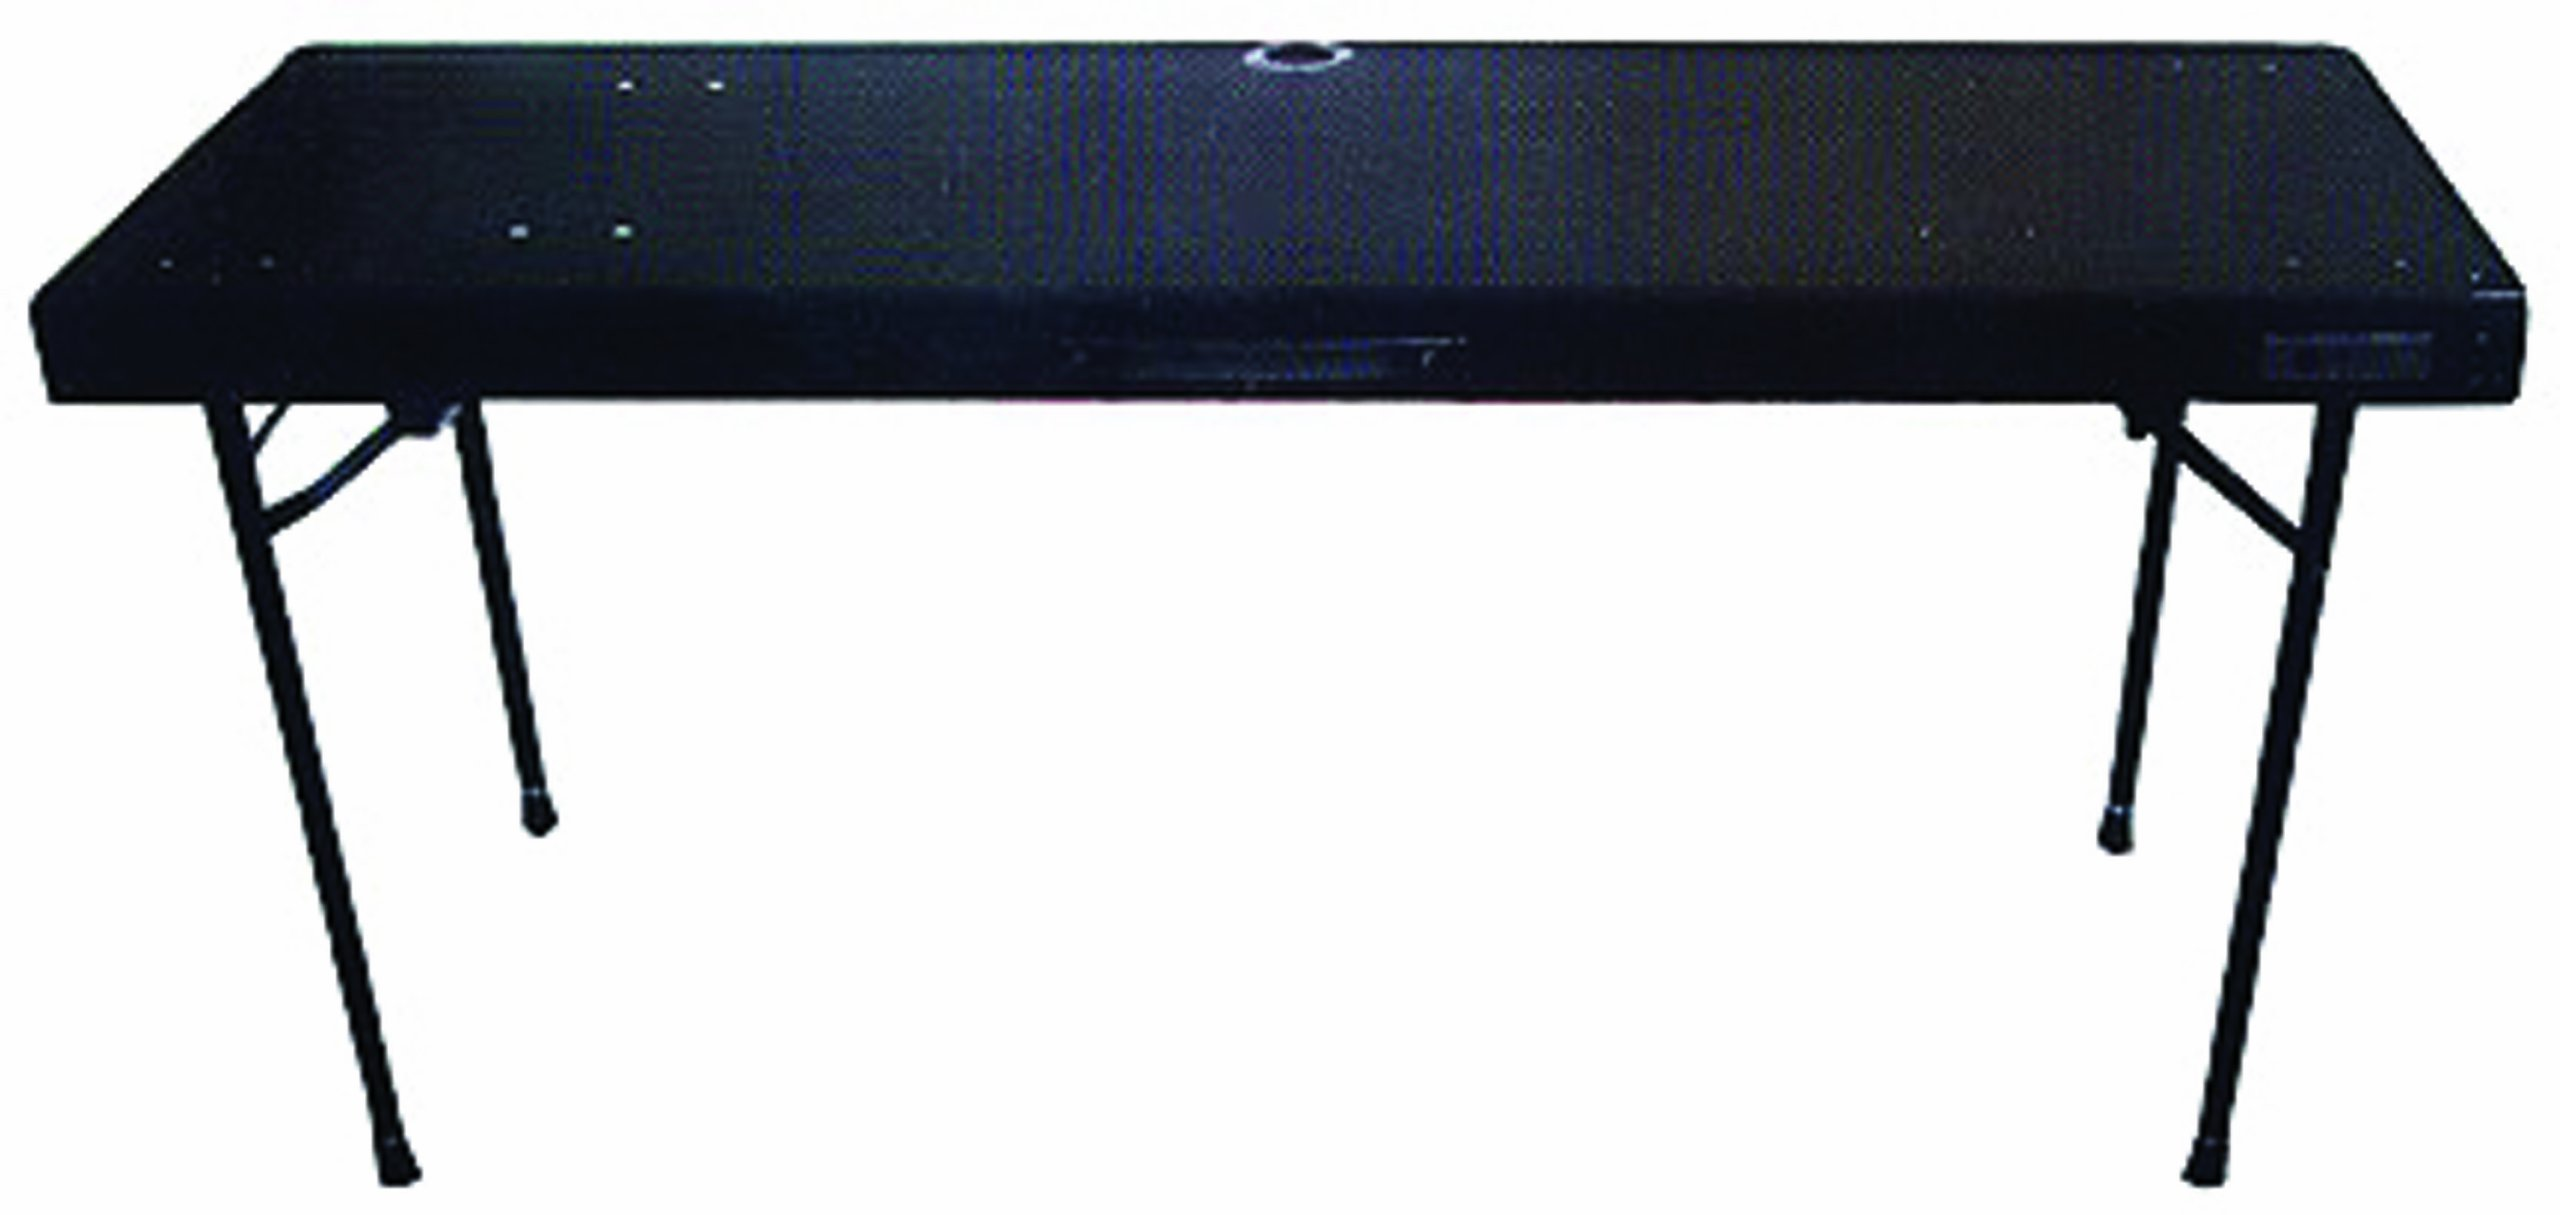 Odyssey CTBC2060 Carpeted Folding Dj Table With Adjustable Leg System